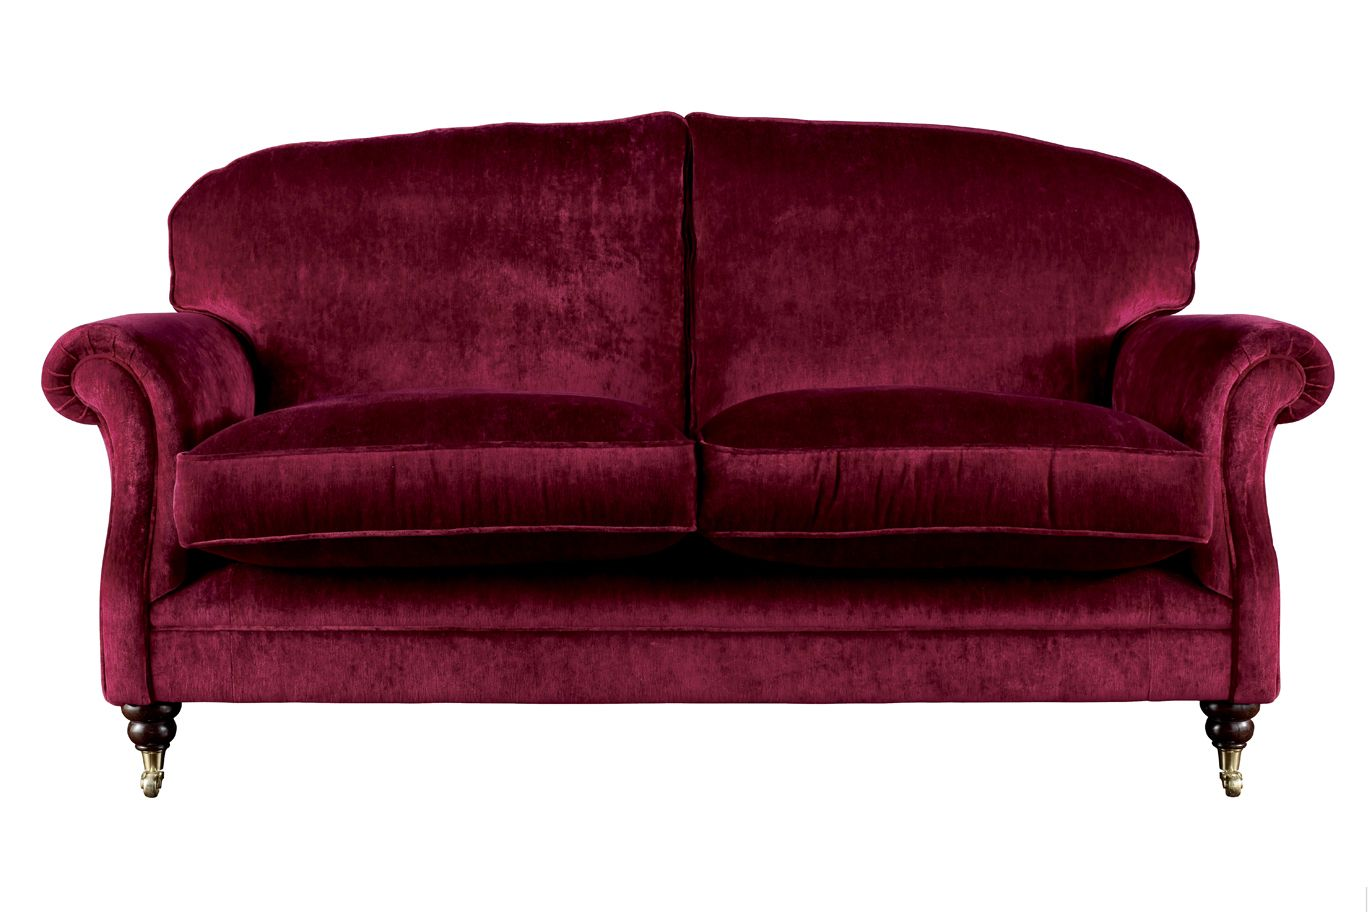 laura ashley sofa bed review multi use sofas uk full size of living room fabric